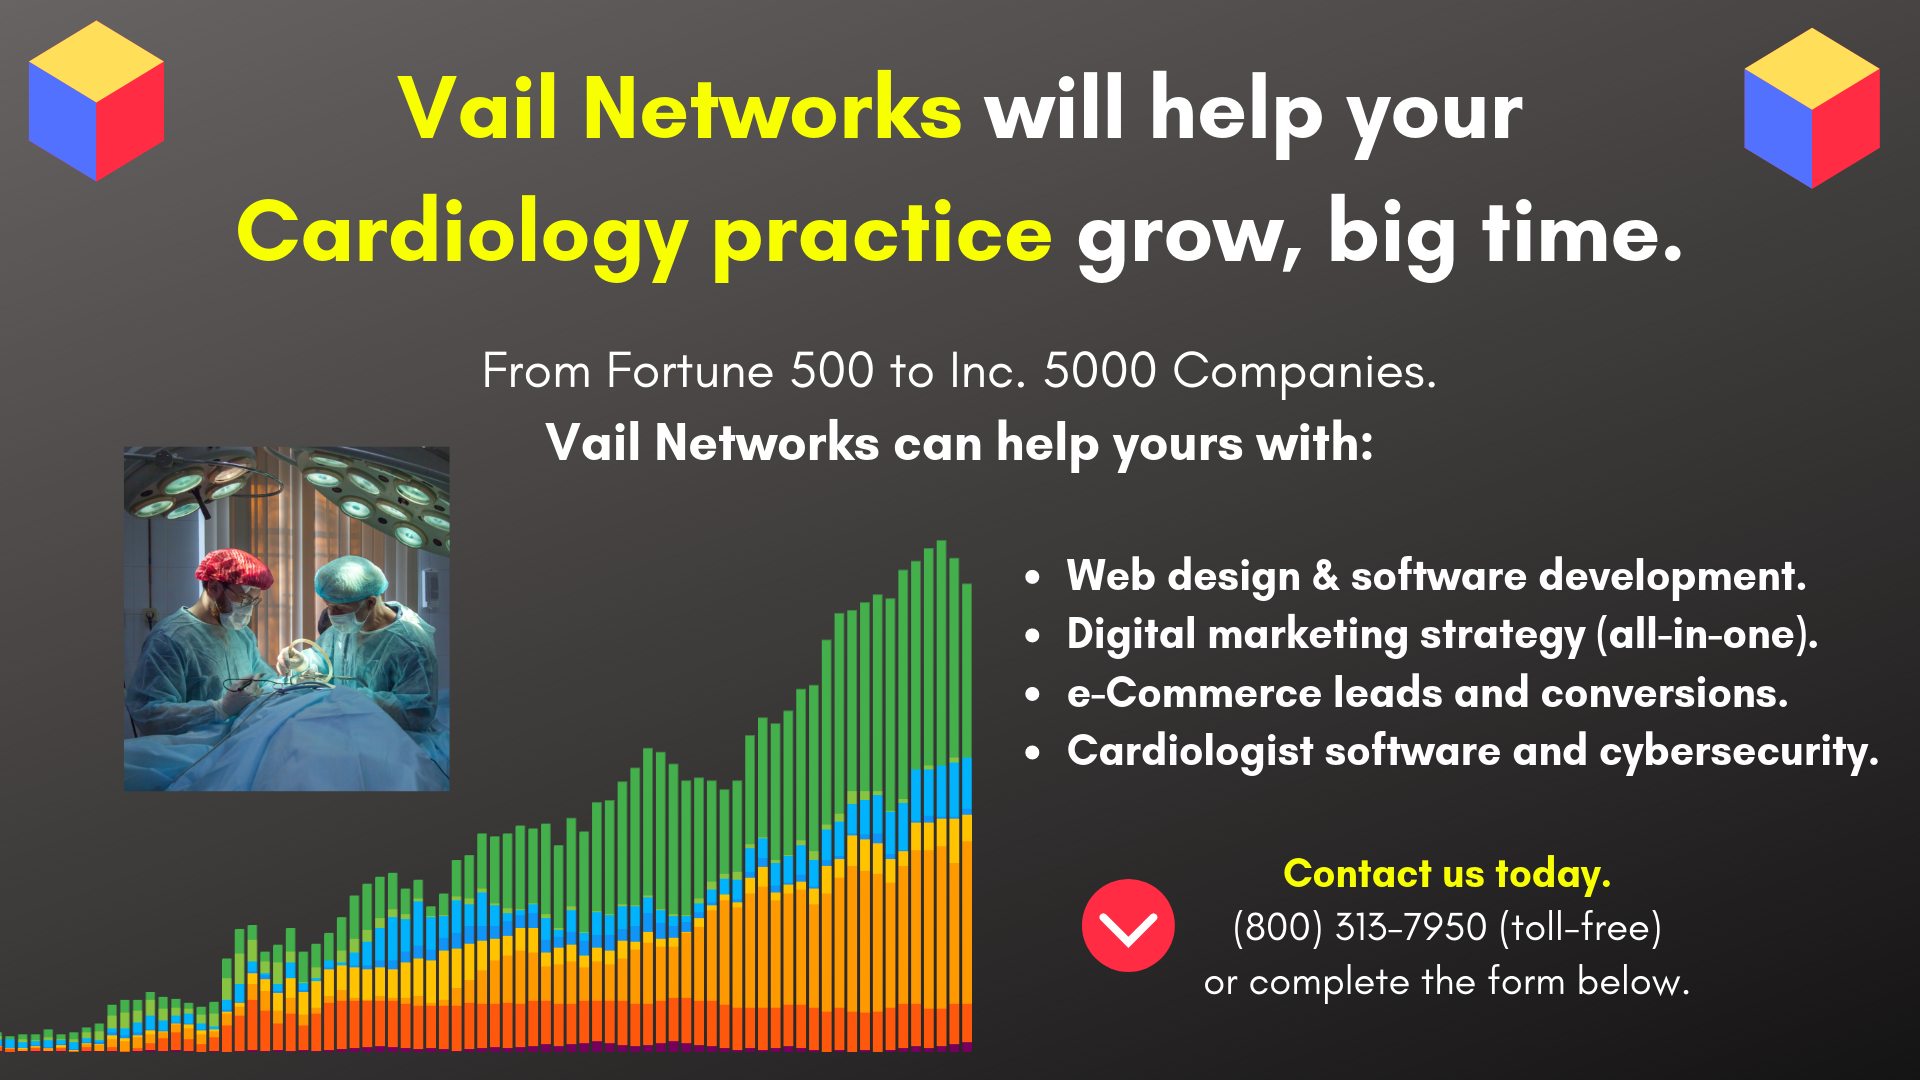 Company to help cardiology practice with online seo, digital marketing, and website design/development: vailnetworks.com